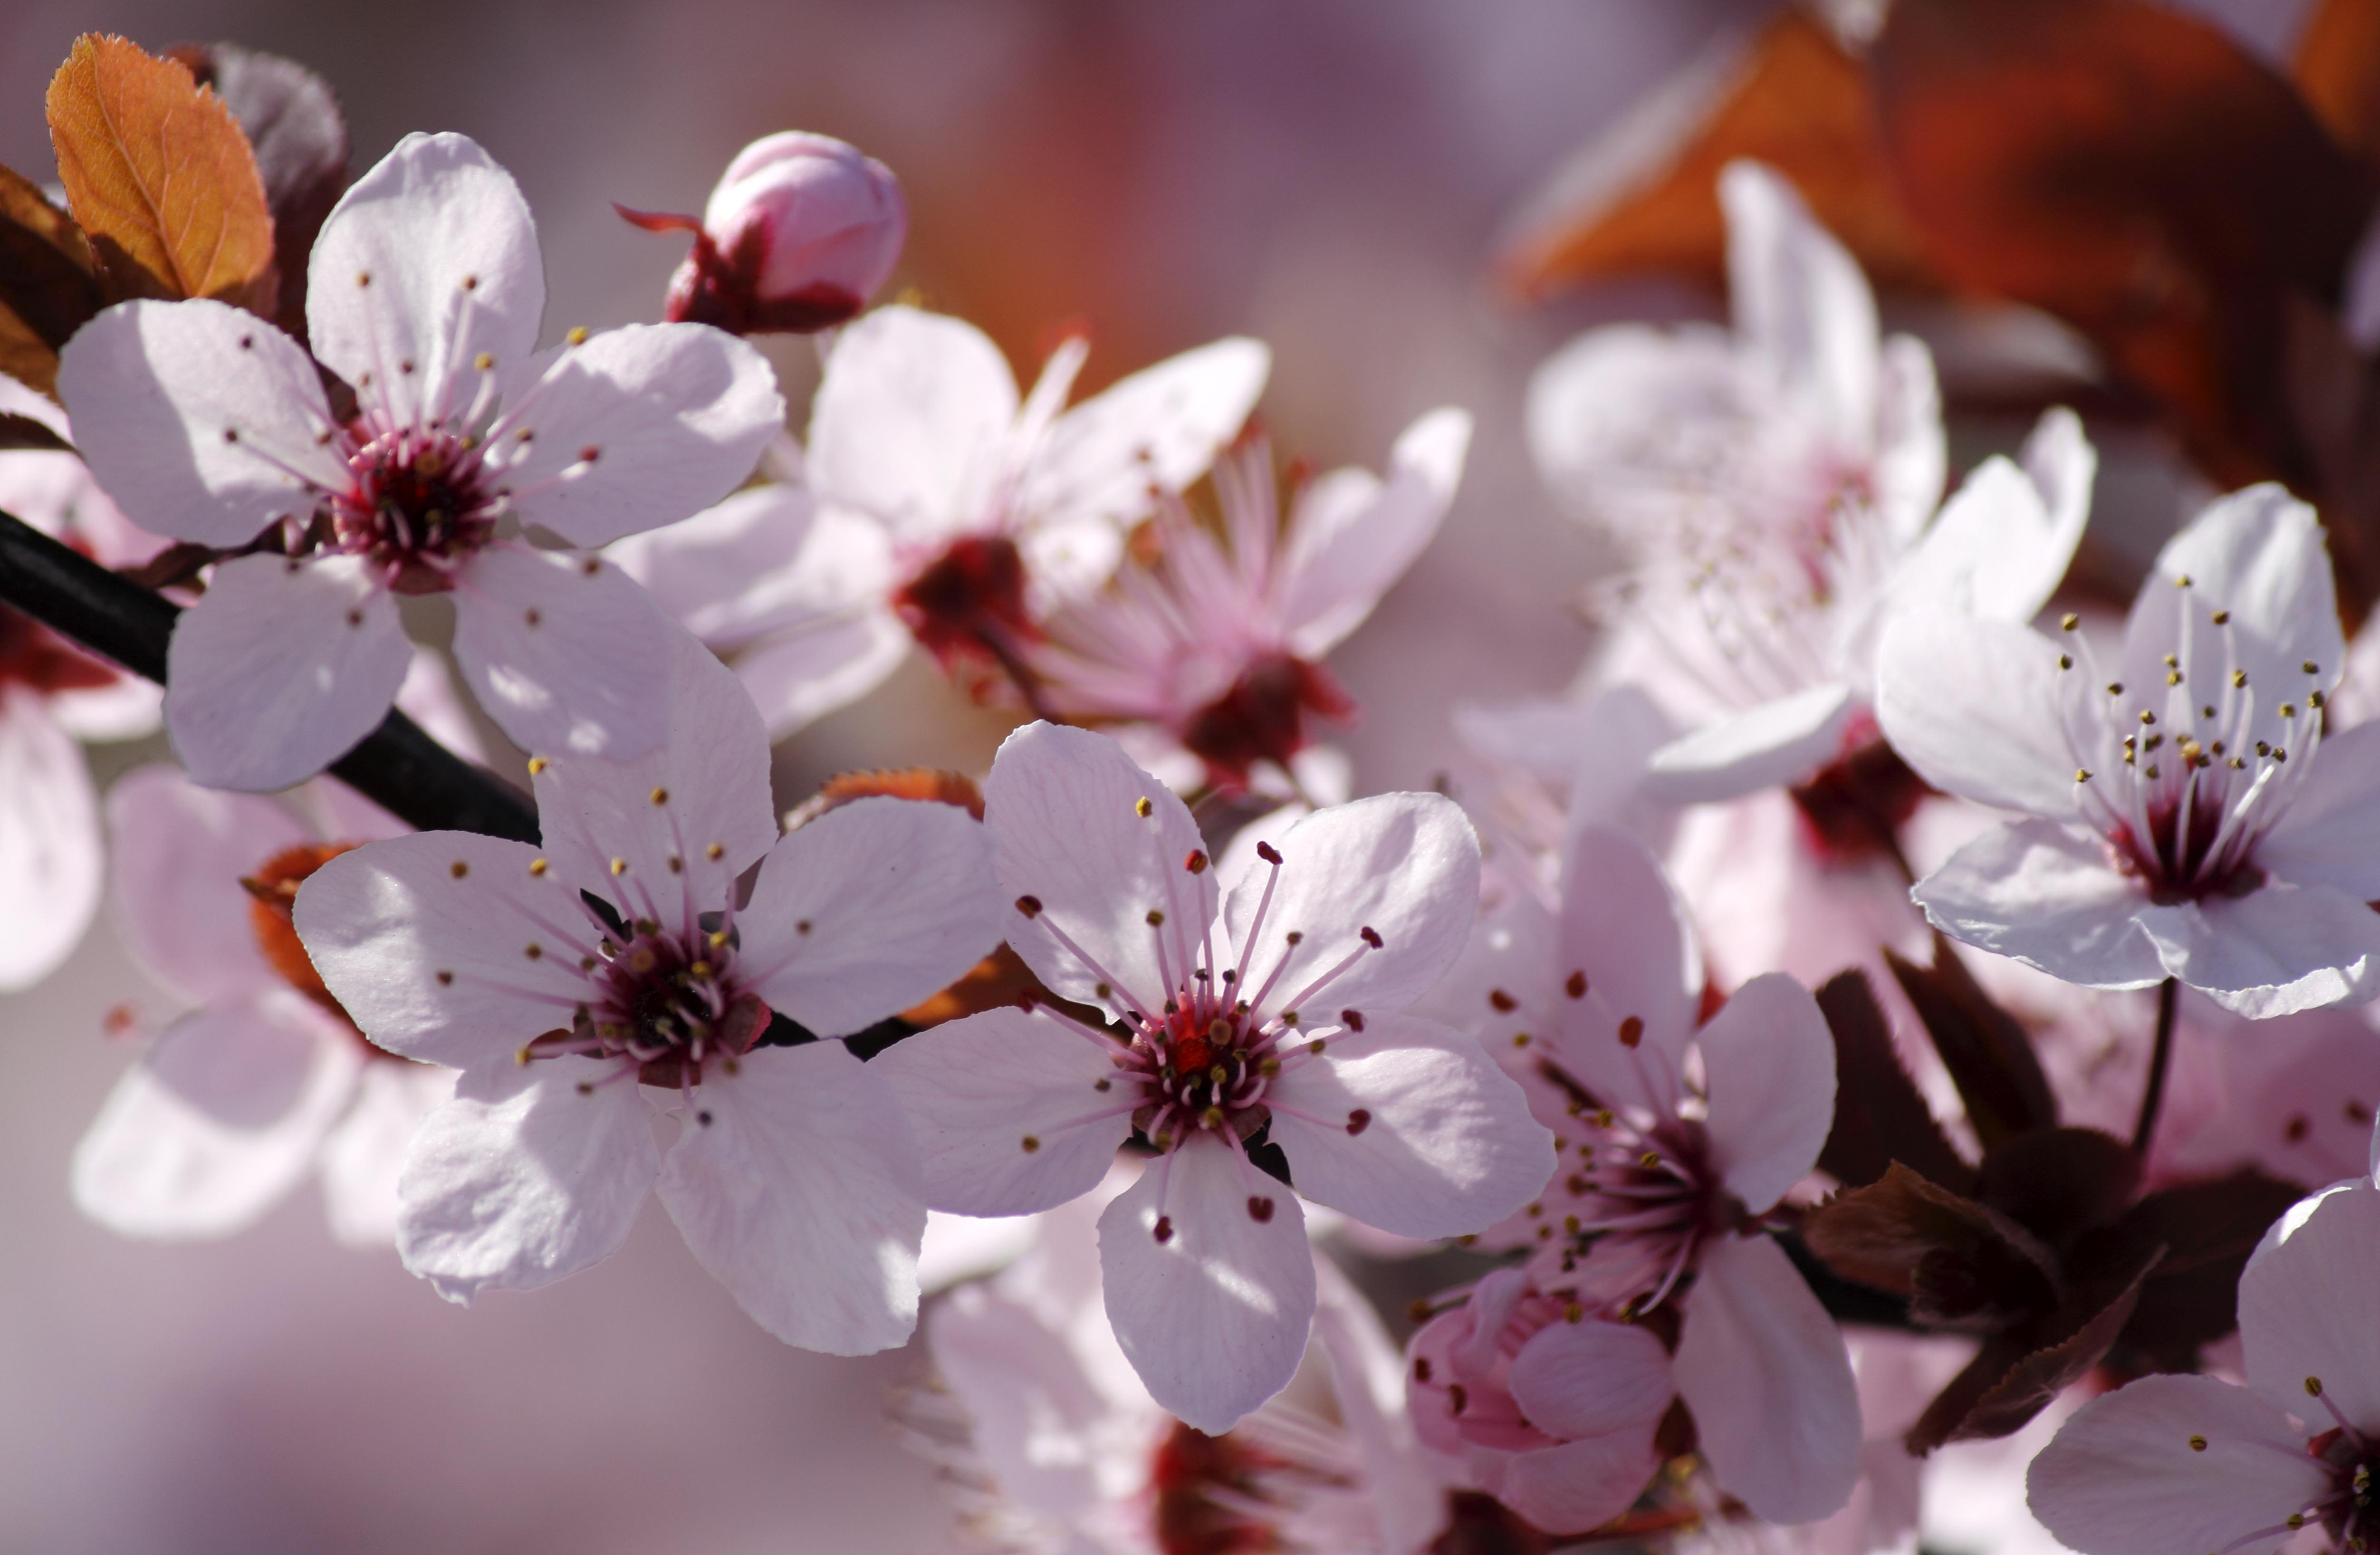 Close-up of Cherry Blossom flower, for list of spring and Easter festivals in DC and Northern Virginia